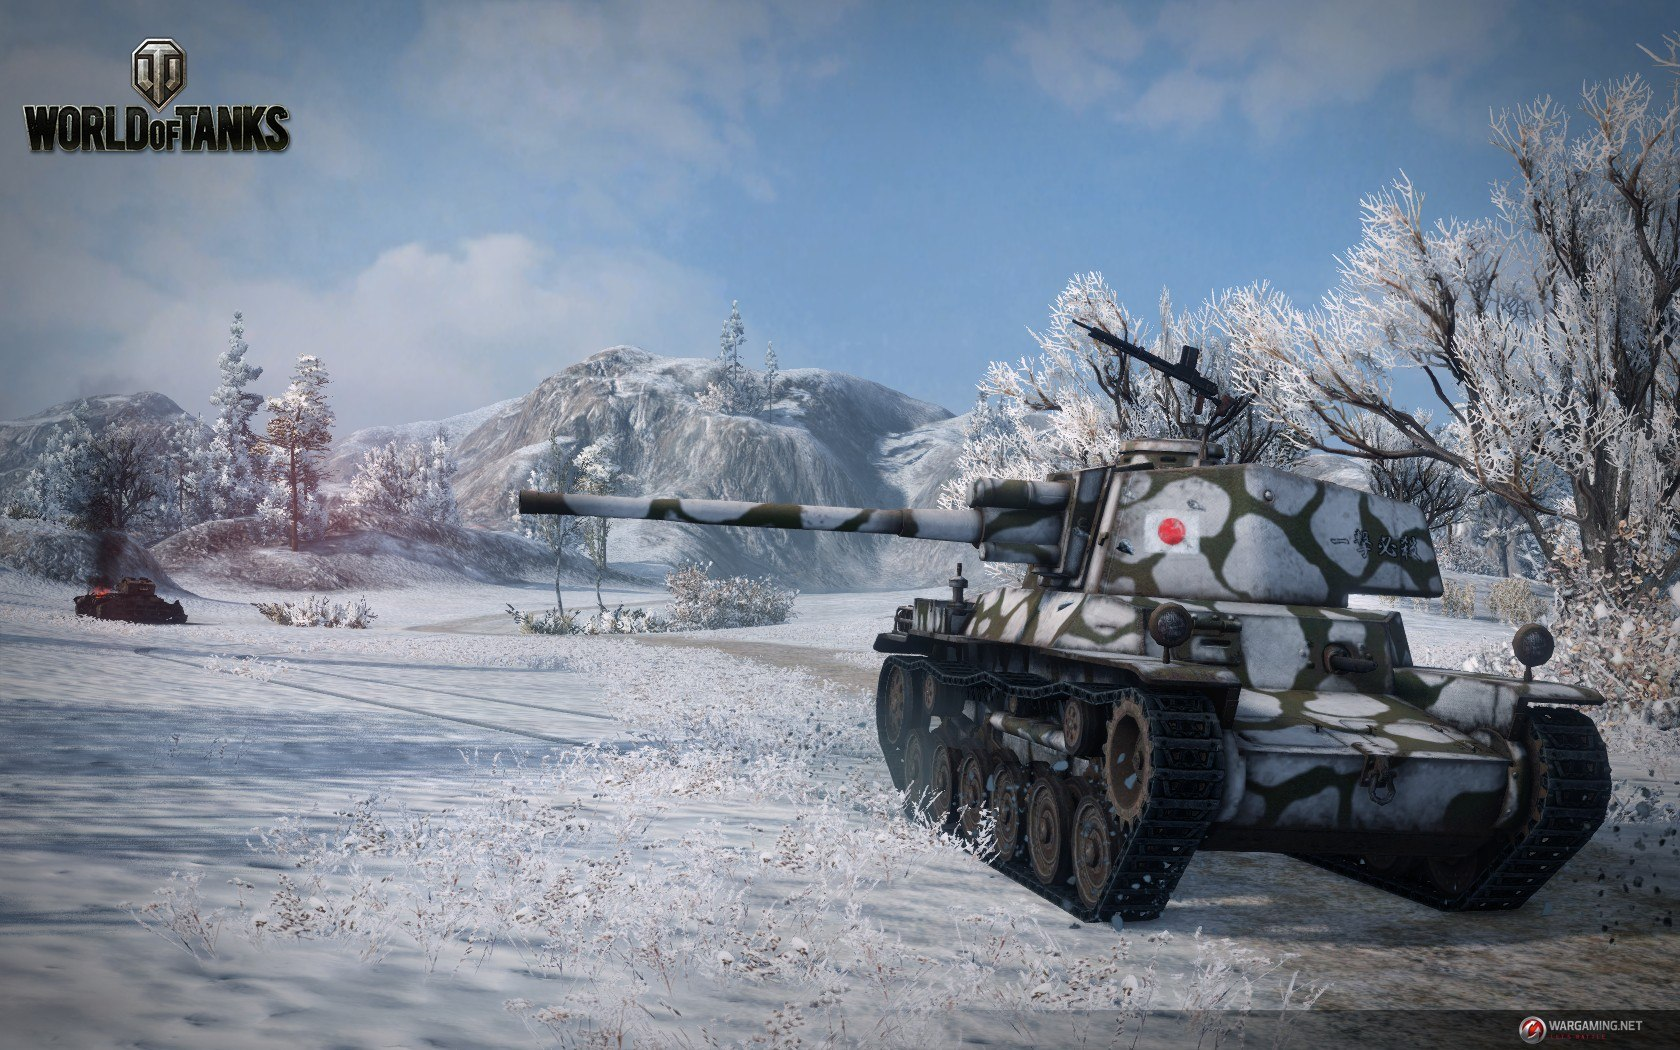 World of Tanks remains one of the best tank combat multiplayer games available to date.